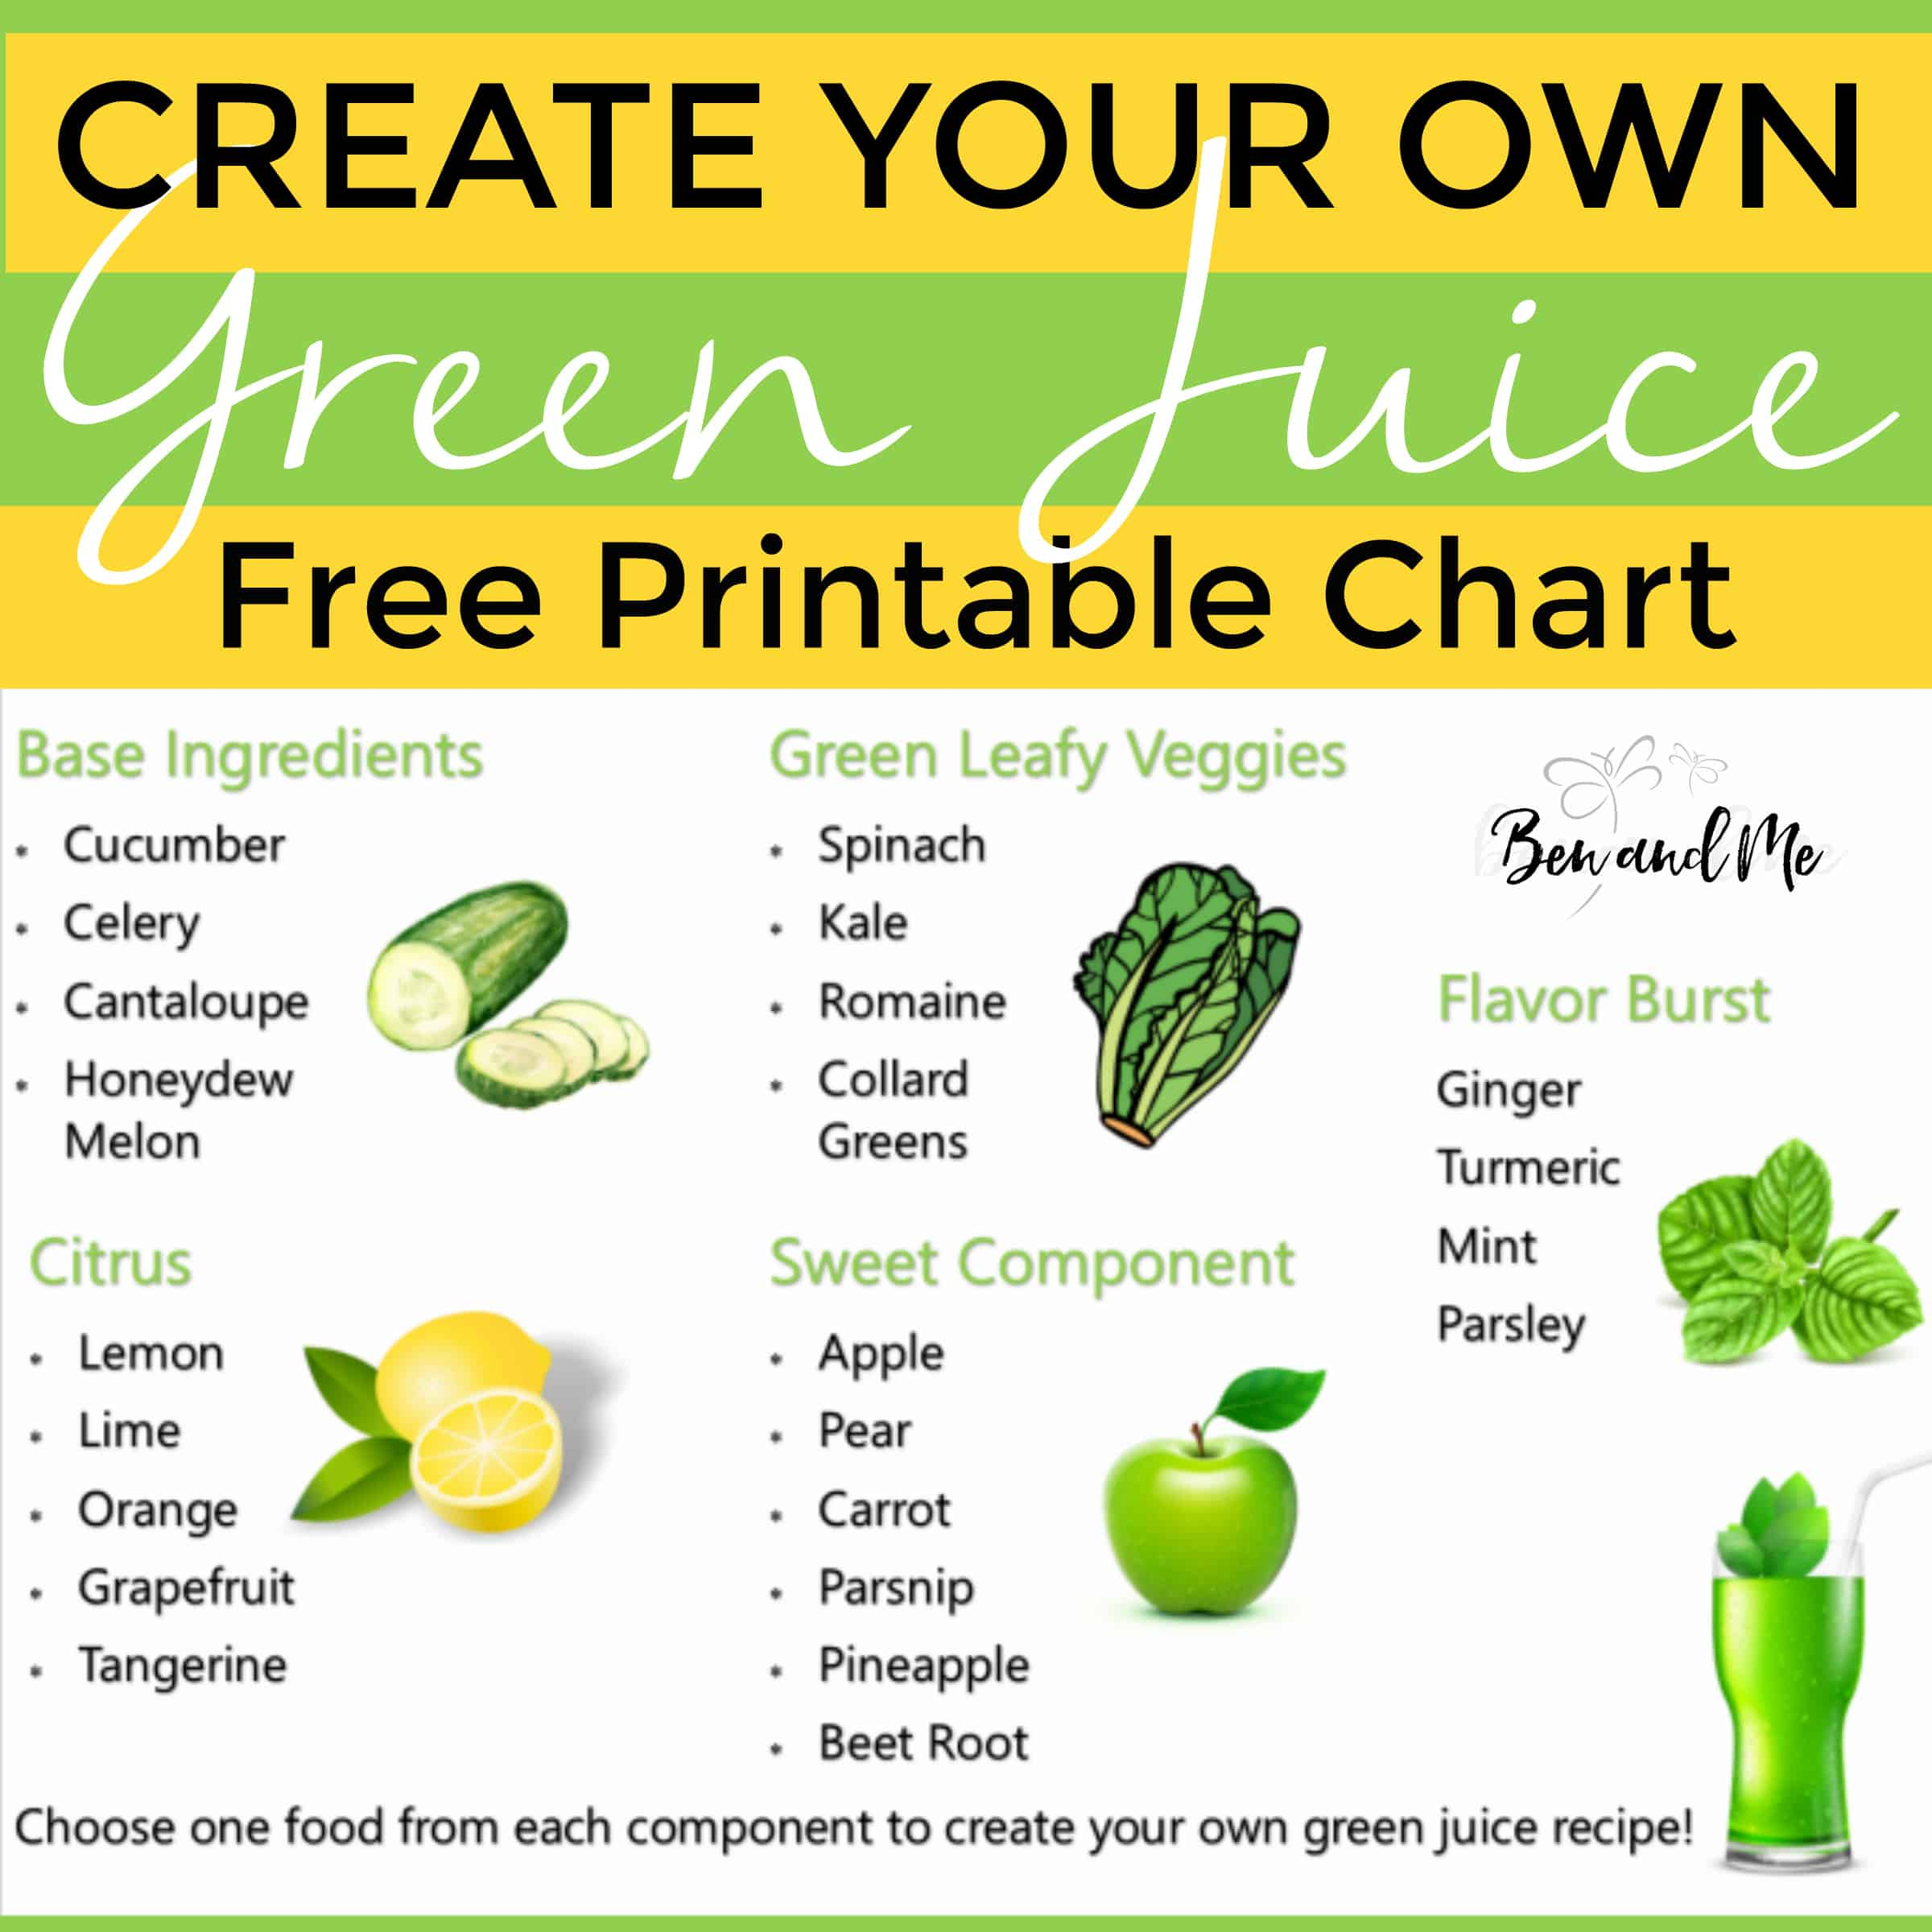 How To Create Your Own Green Juice Recipes A Simple